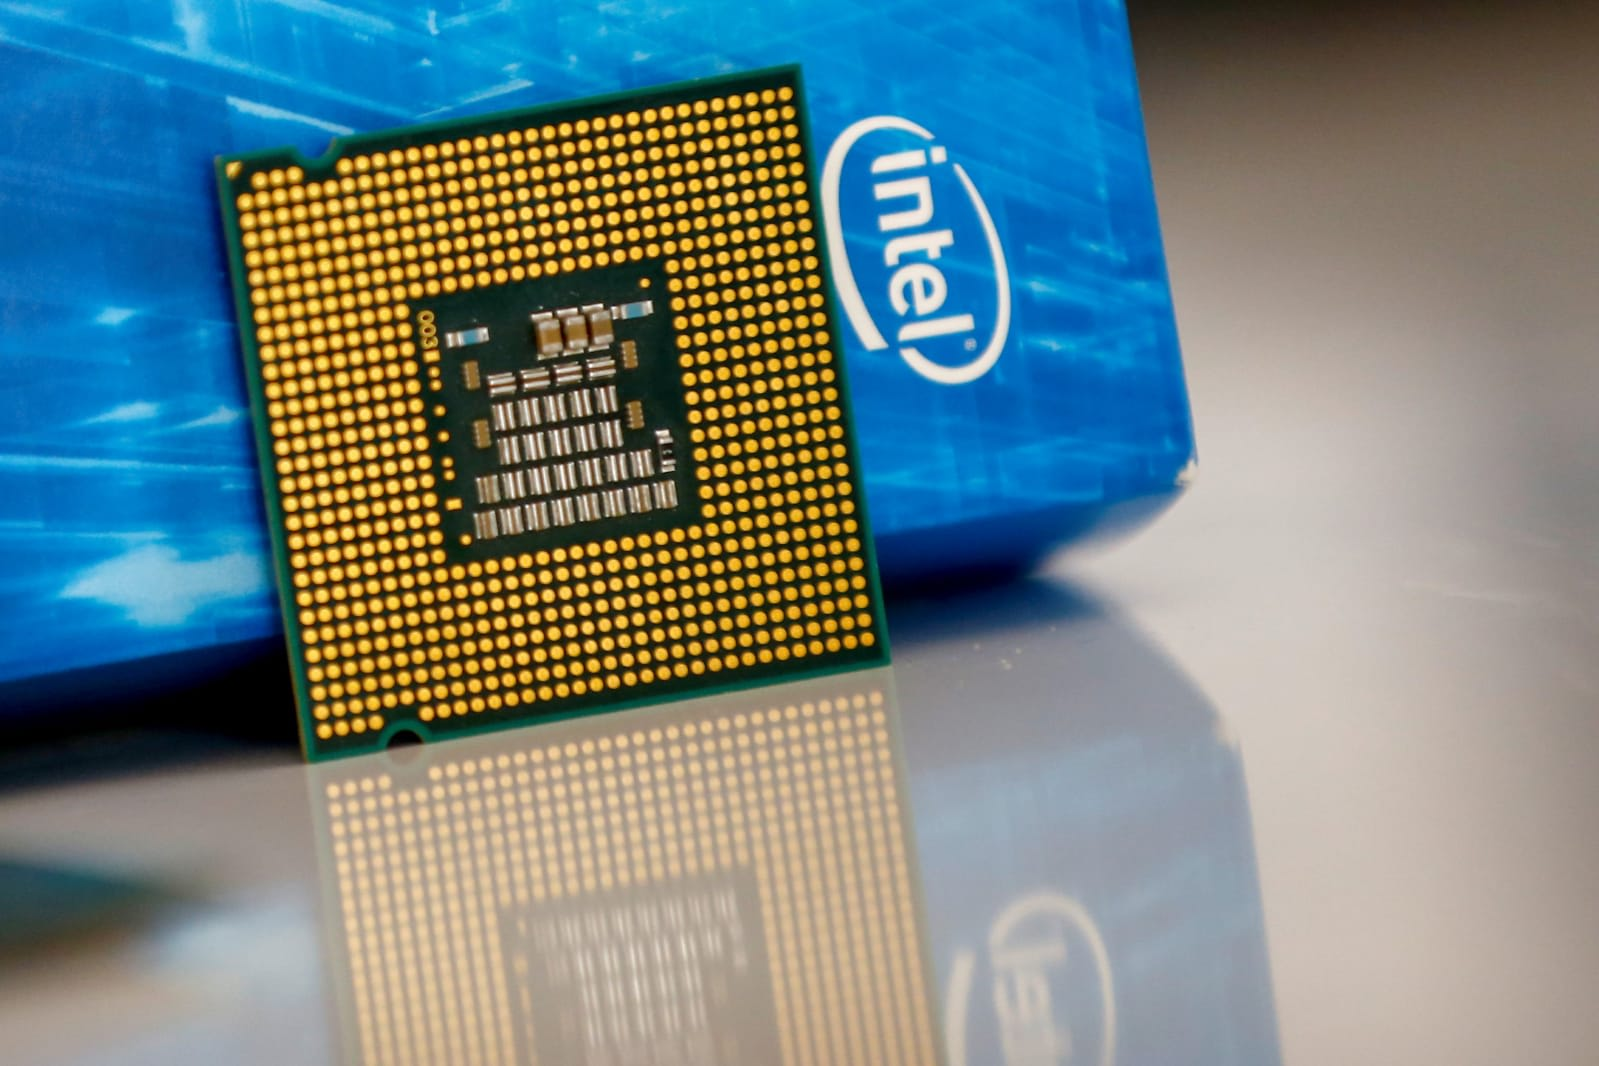 Intel 10th-gen desktop chips may pack better multitasking across the board